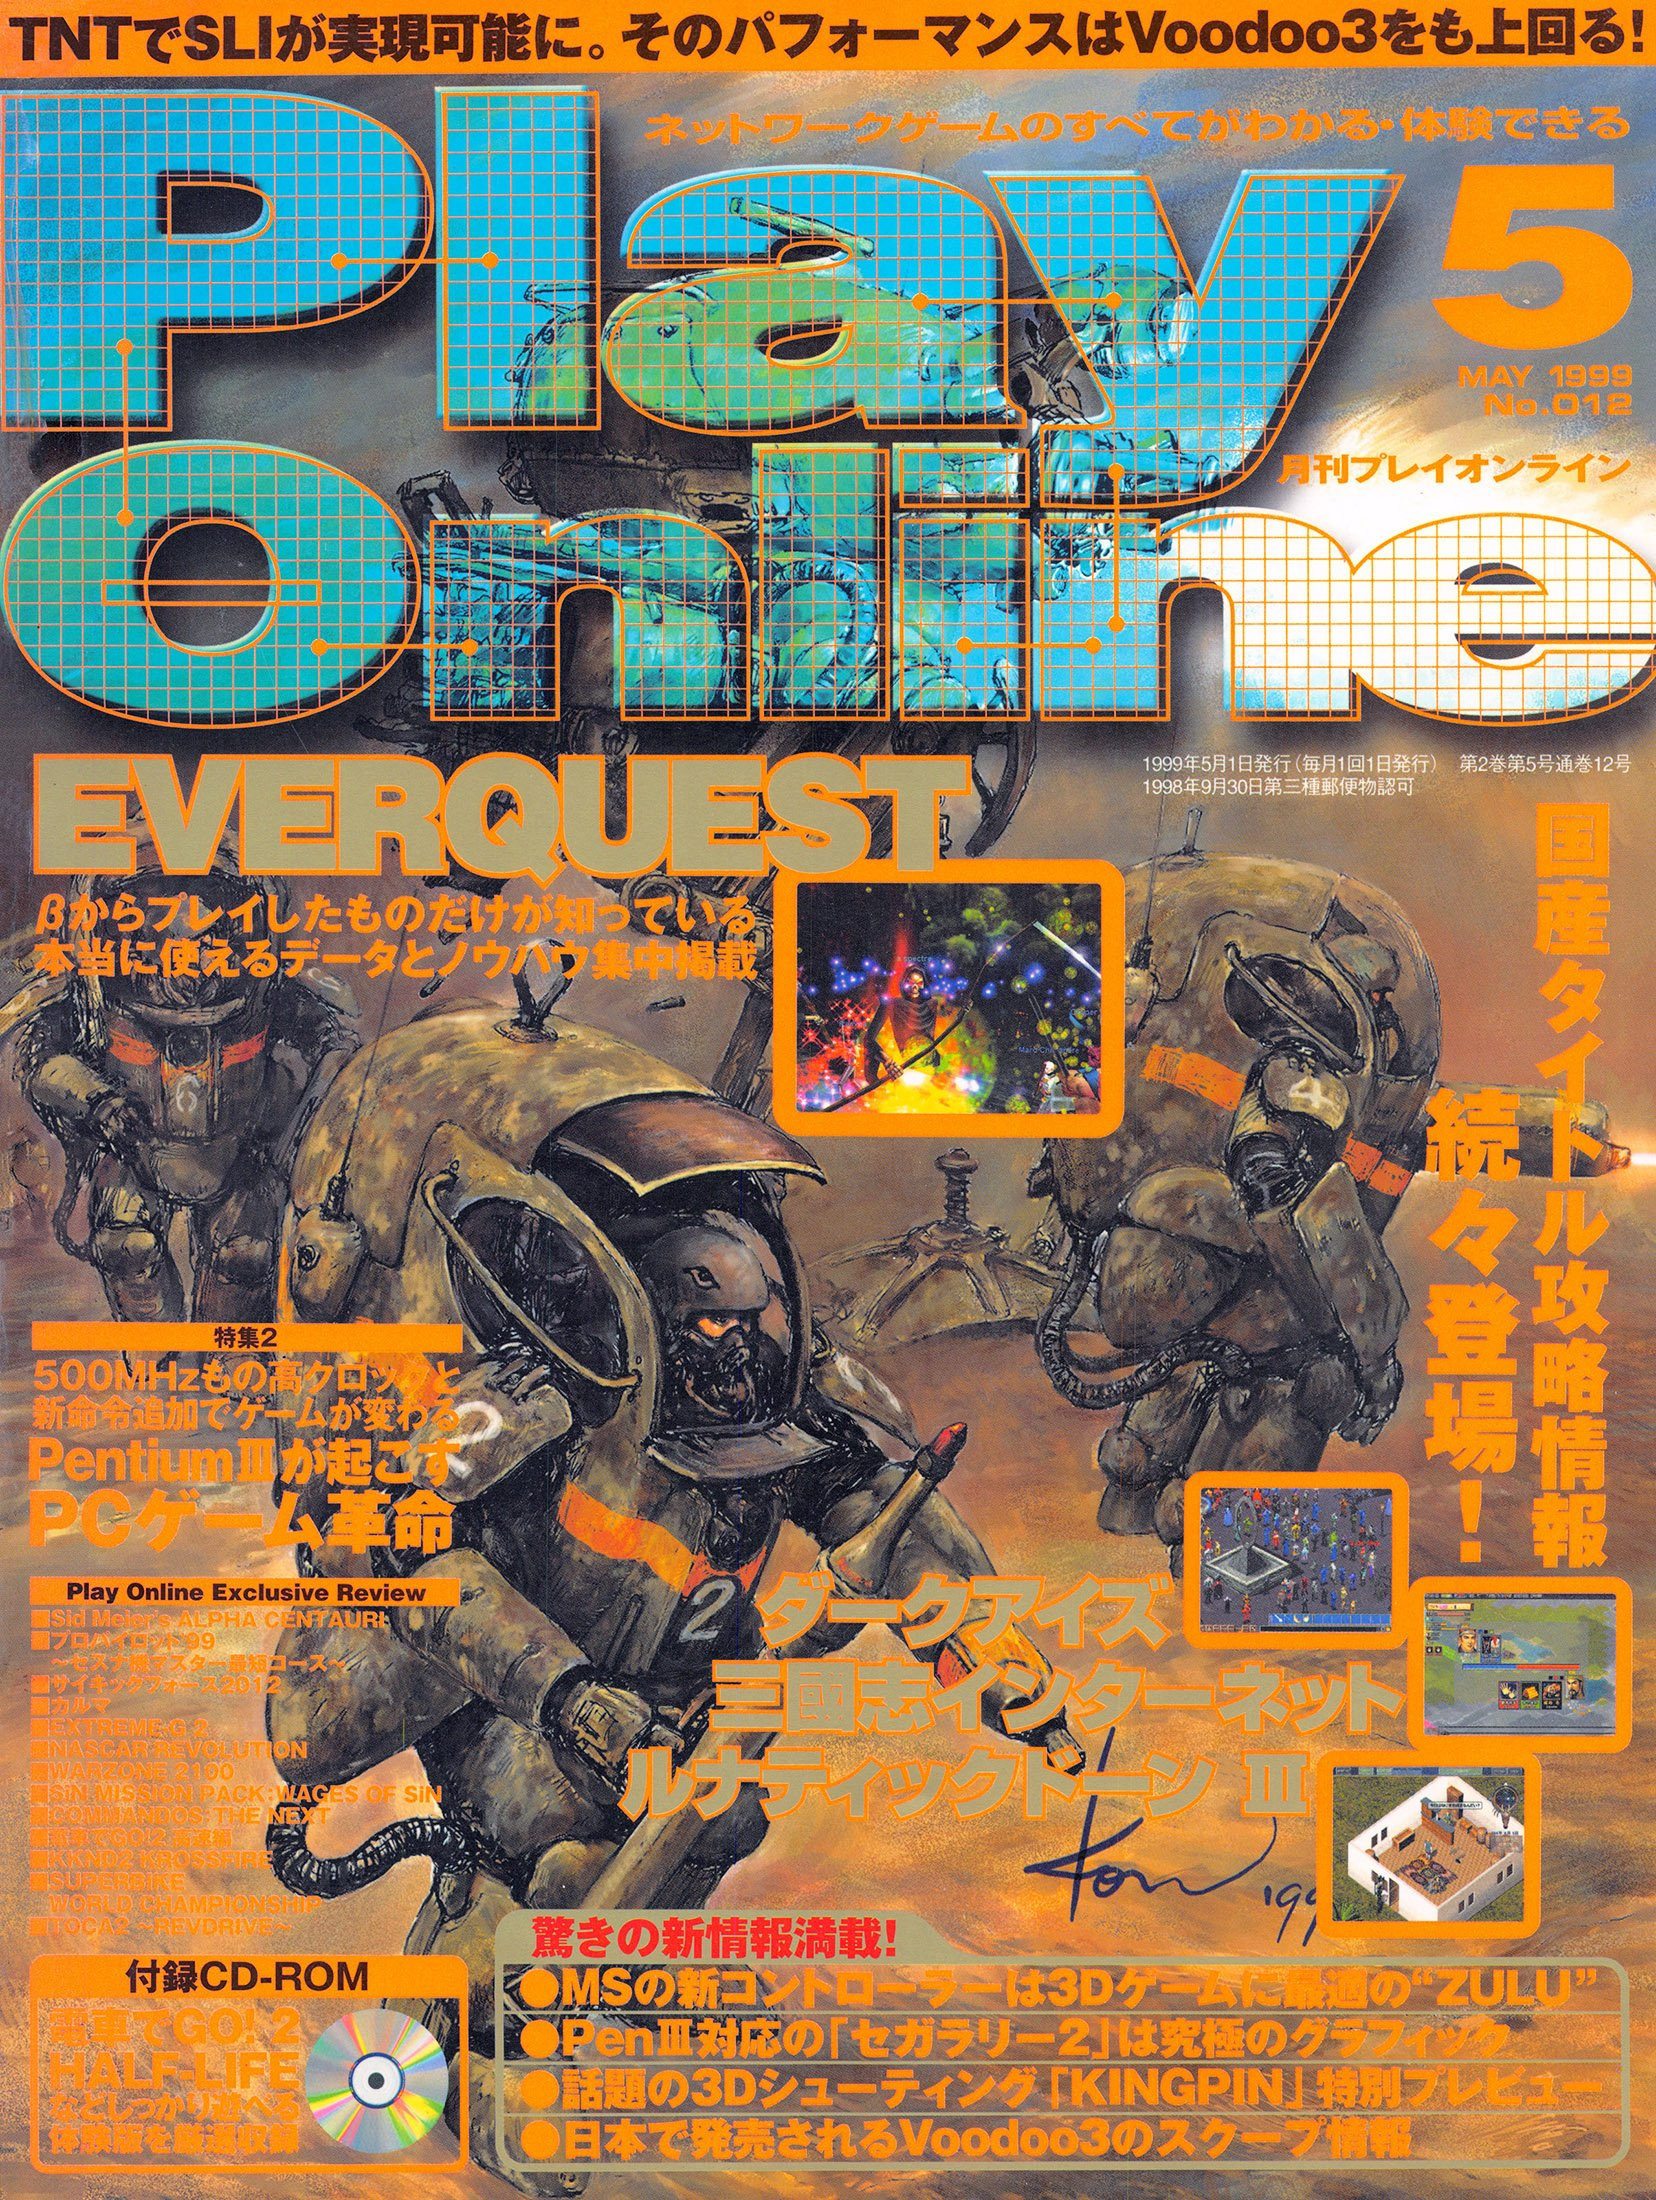 New Release - Play Online No.012 (May 1999)